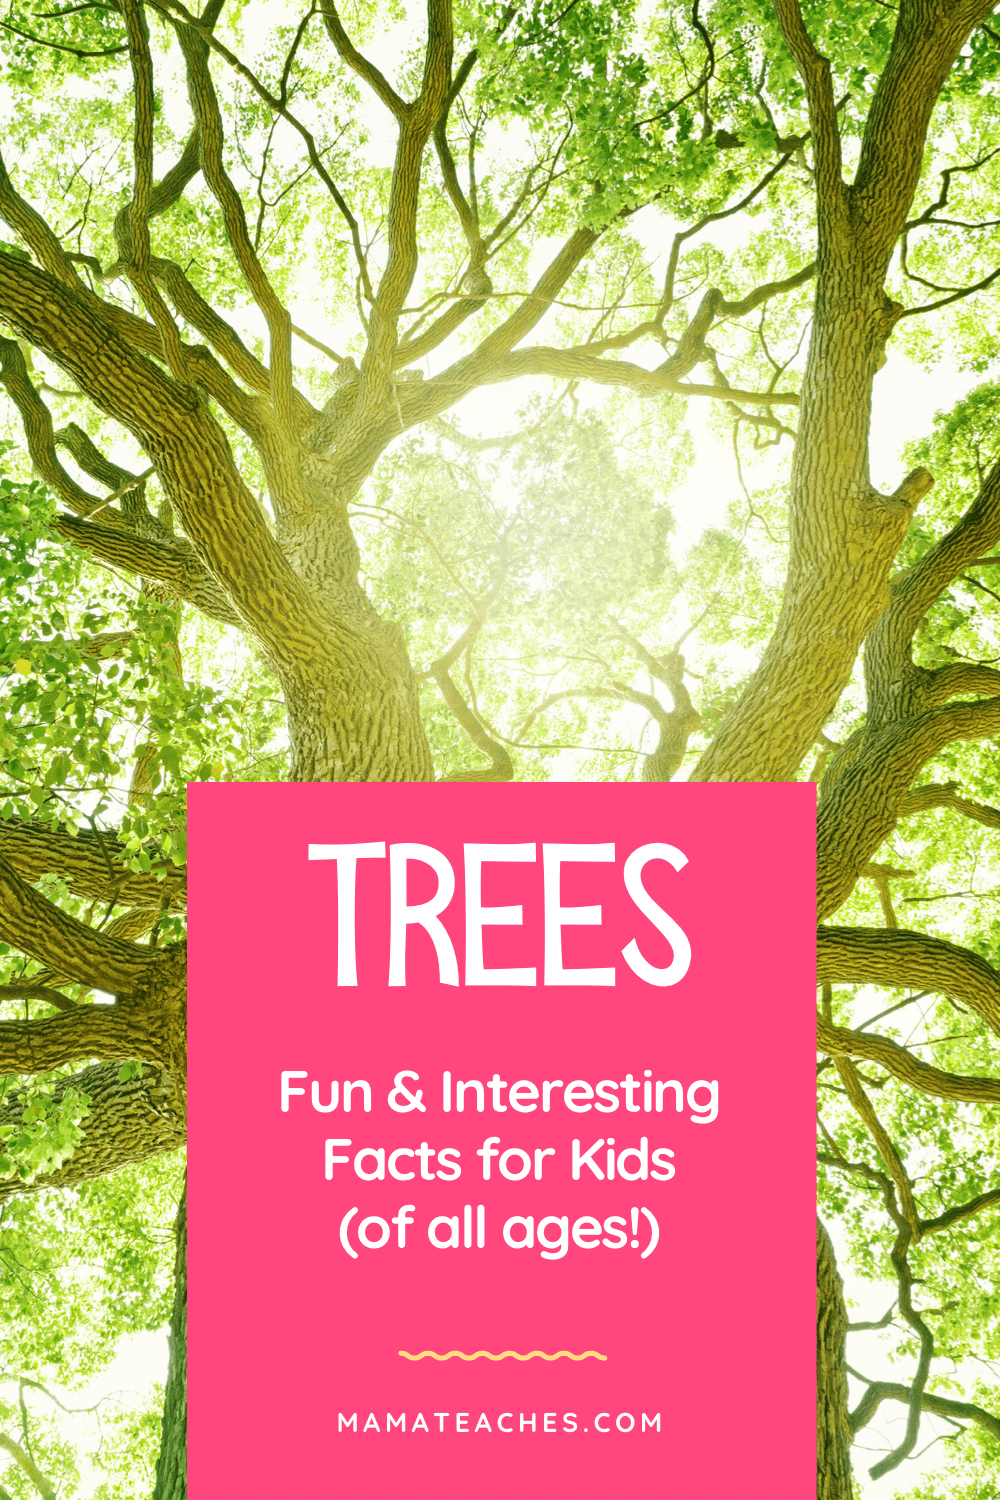 Fun Facts About Trees - giant trees like the one pictured are the best!